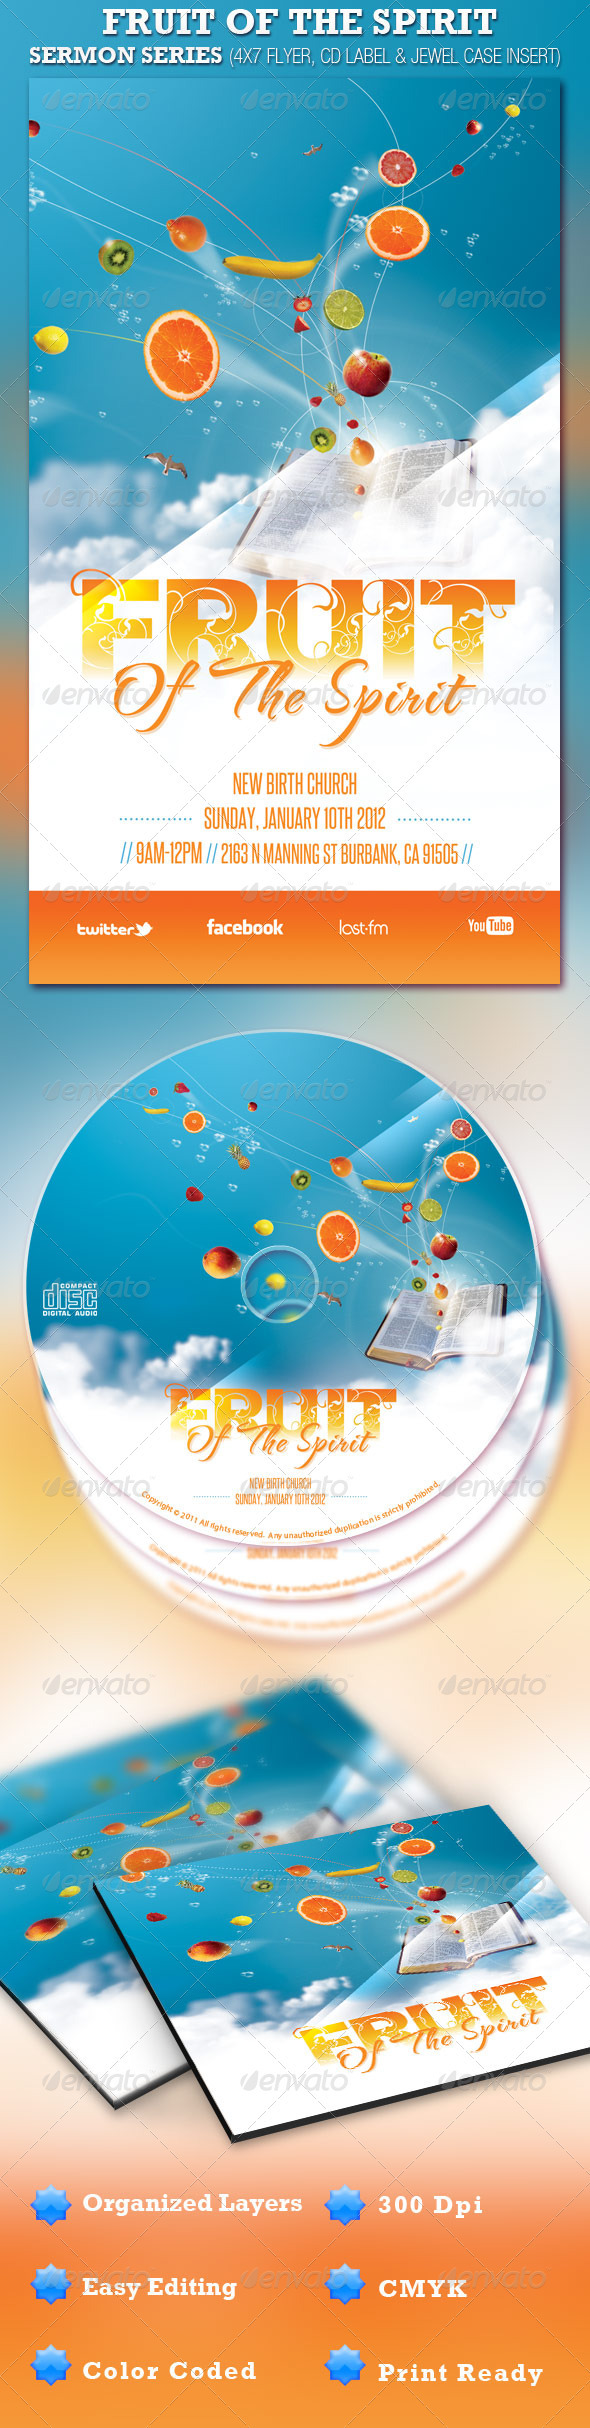 Fruit of the Spirit Church Flyer and CD Template - Church Flyers